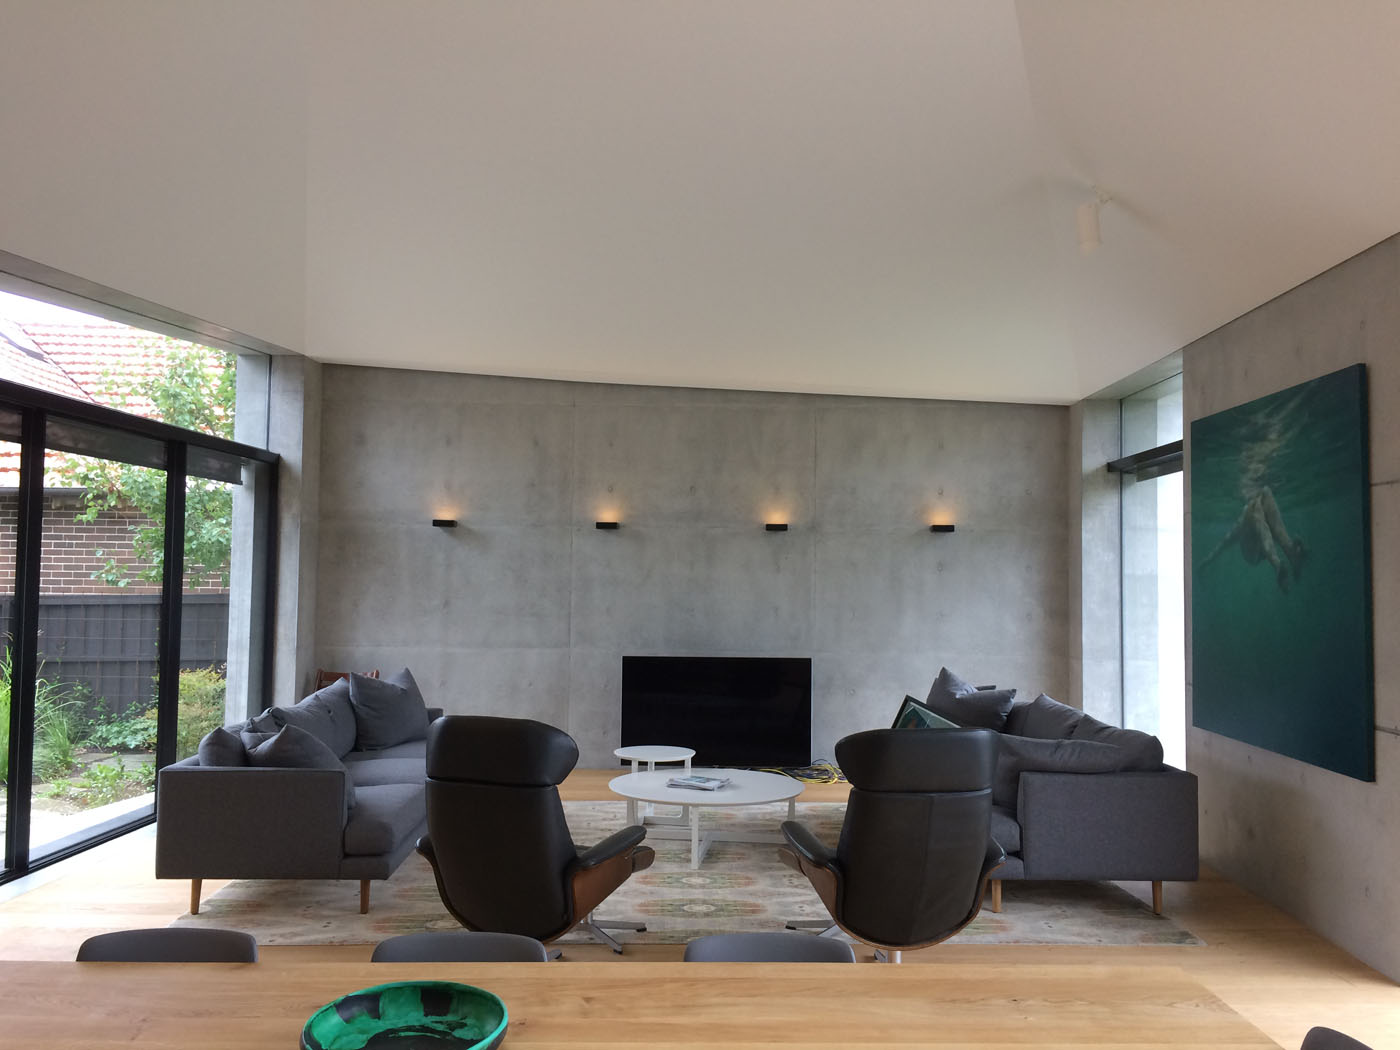 interior view off form concrete wall